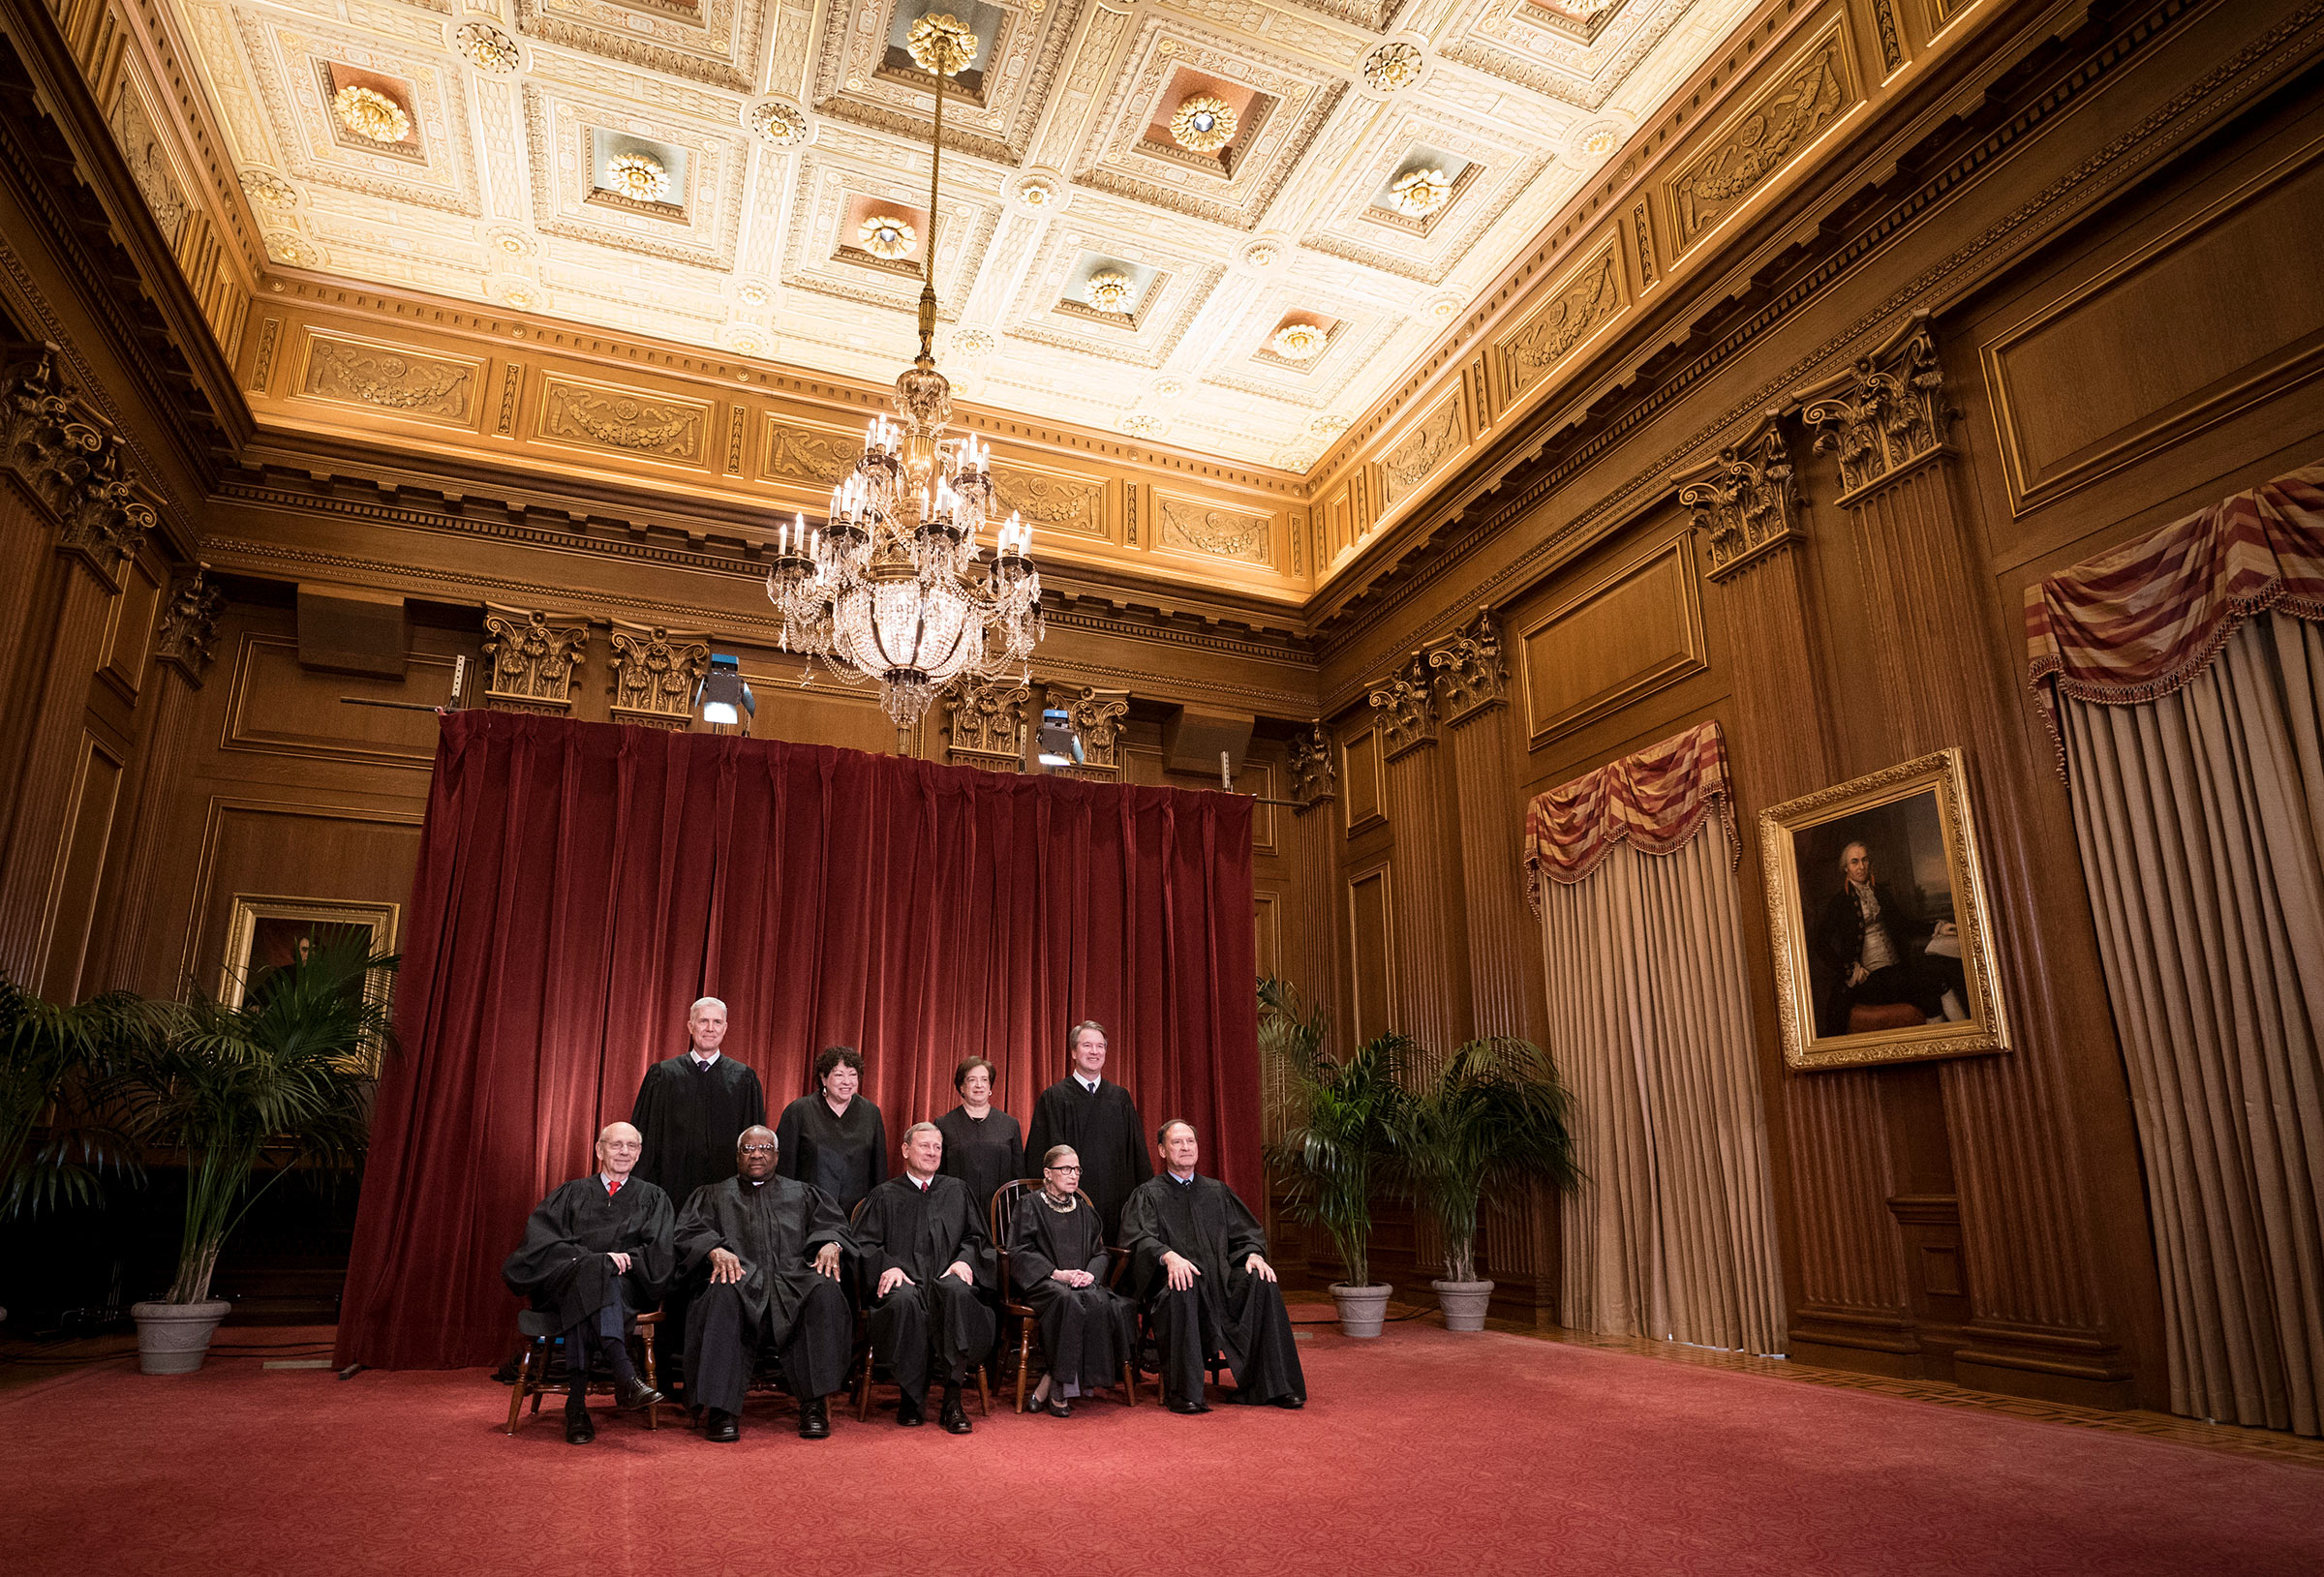 United States Supreme Court (Front L-R) Associate Justice Stephen Breyer, Associate Justice Clarence Thomas, Chief Justice John Roberts, Associate Justice Ruth Bader Ginsburg, Associate Justice Samuel Alito, Jr., (Back L-R) Associate Justice Neil Gorsuch, Associate Justice Sonia Sotomayor, Associate Justice Elena Kagan and Associate Justice Brett Kavanaugh pose for their official portrait at the in the East Conference Room at the Supreme Court building November 30, 2018 in Washington, DC.